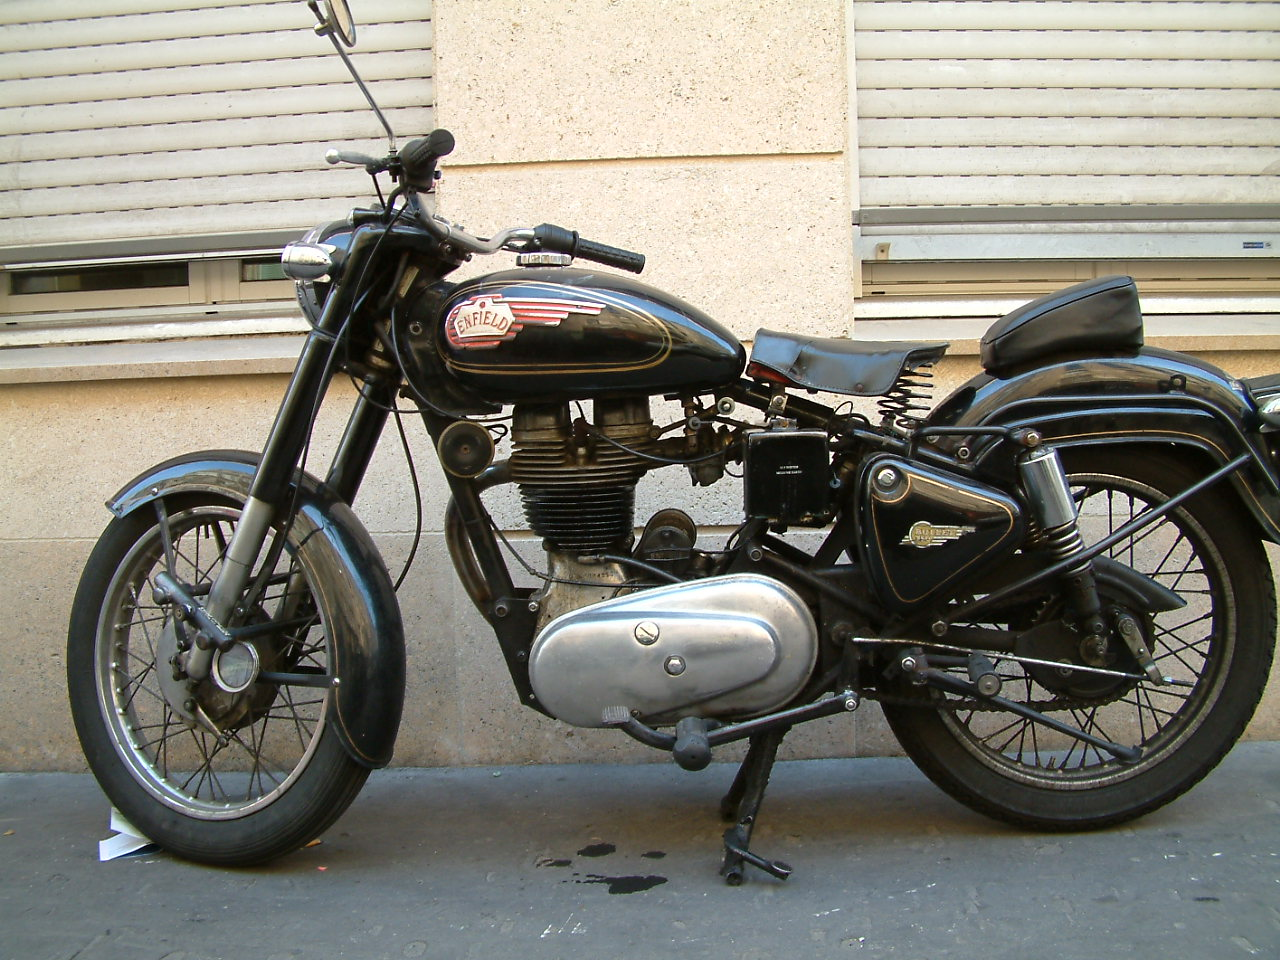 Royal Enfield Bullet 500 Army 2005 images #123263